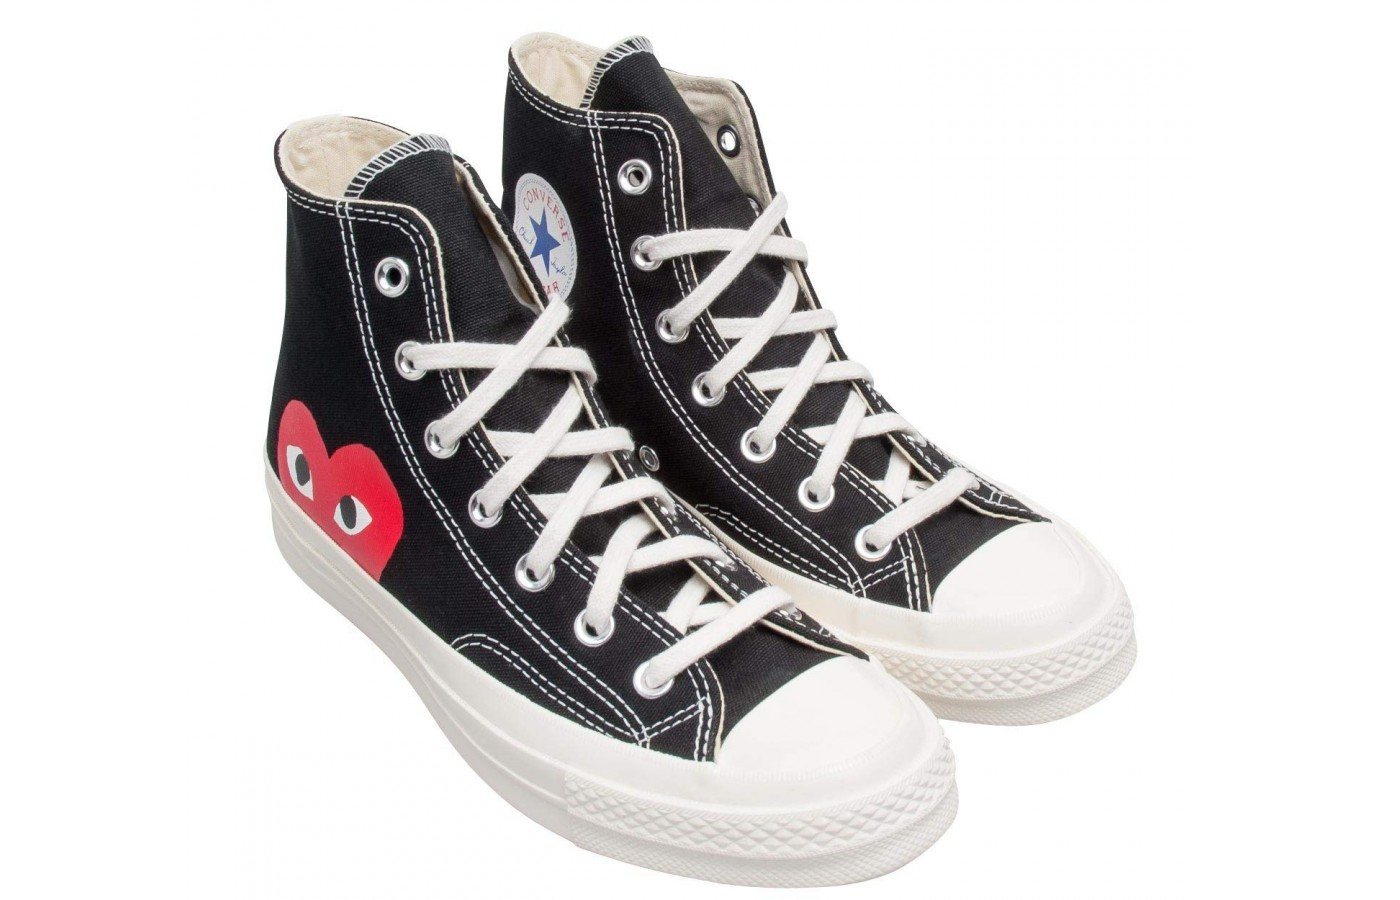 premium selection 57f30 40c8e Converse Comme Des Garcons Play Reviewed. Side  Angle  Back